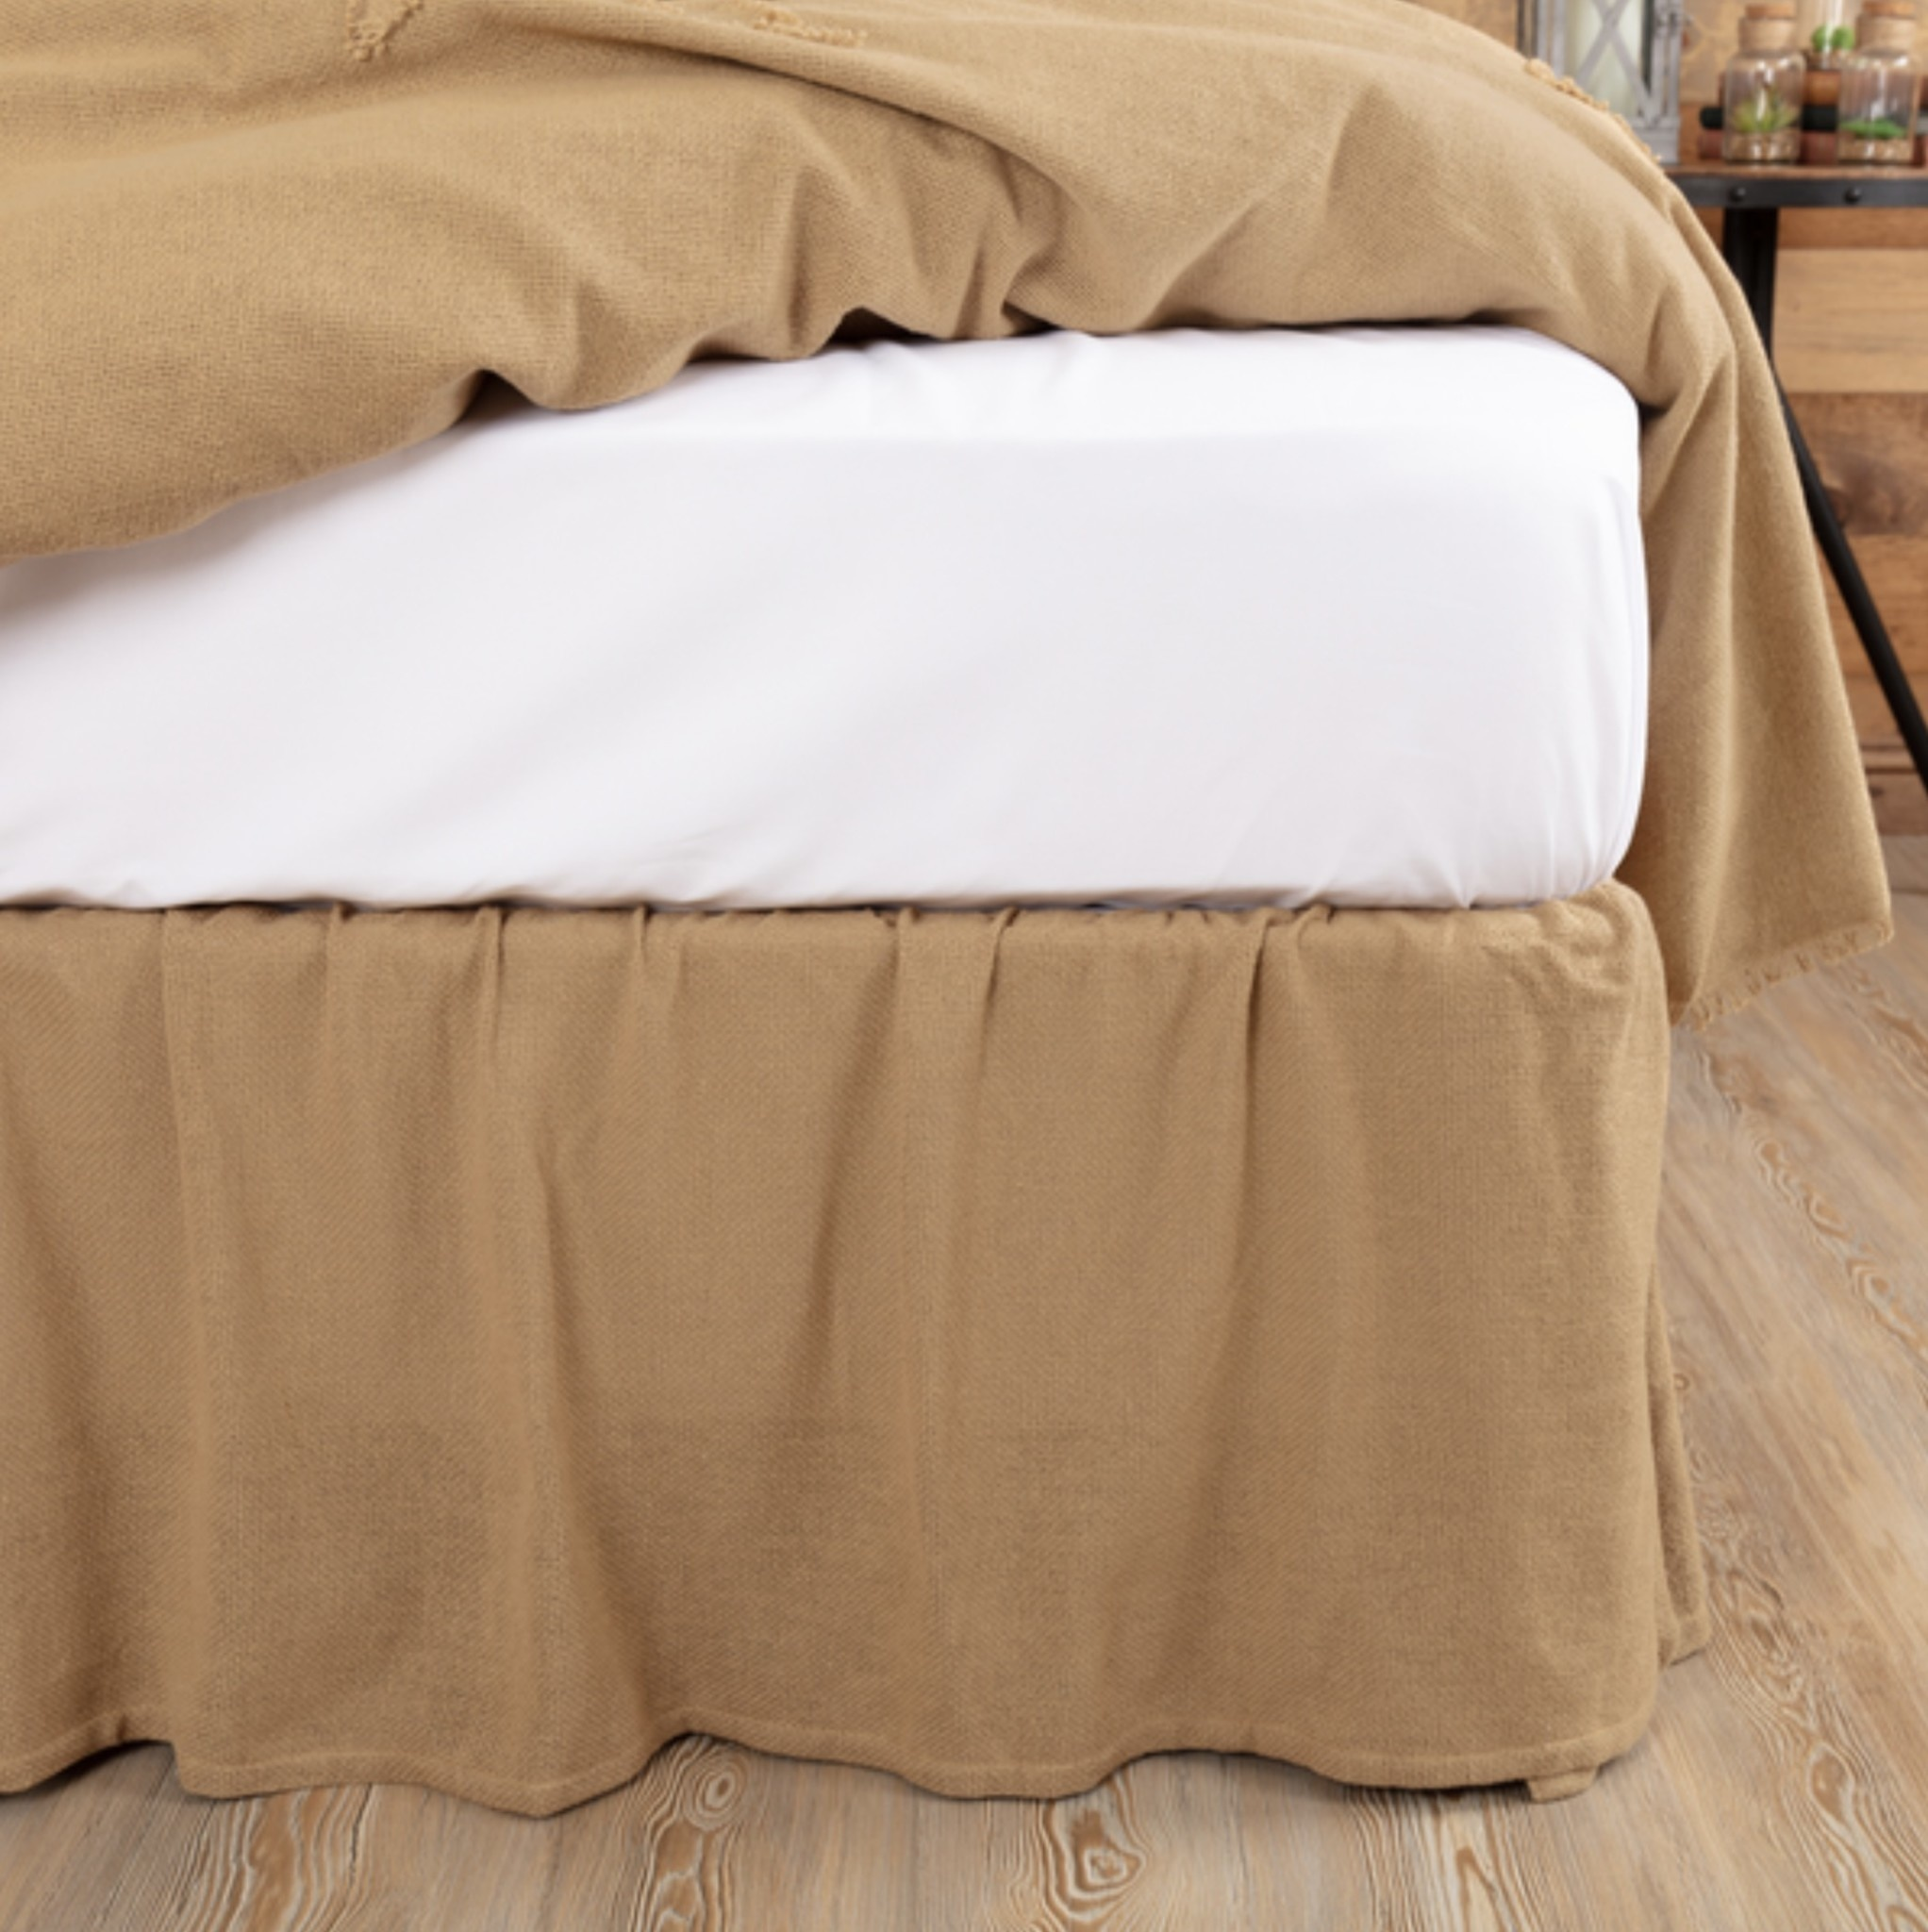 VHC Brands Burlap Natural Ruffled Fringe Bed Skirt